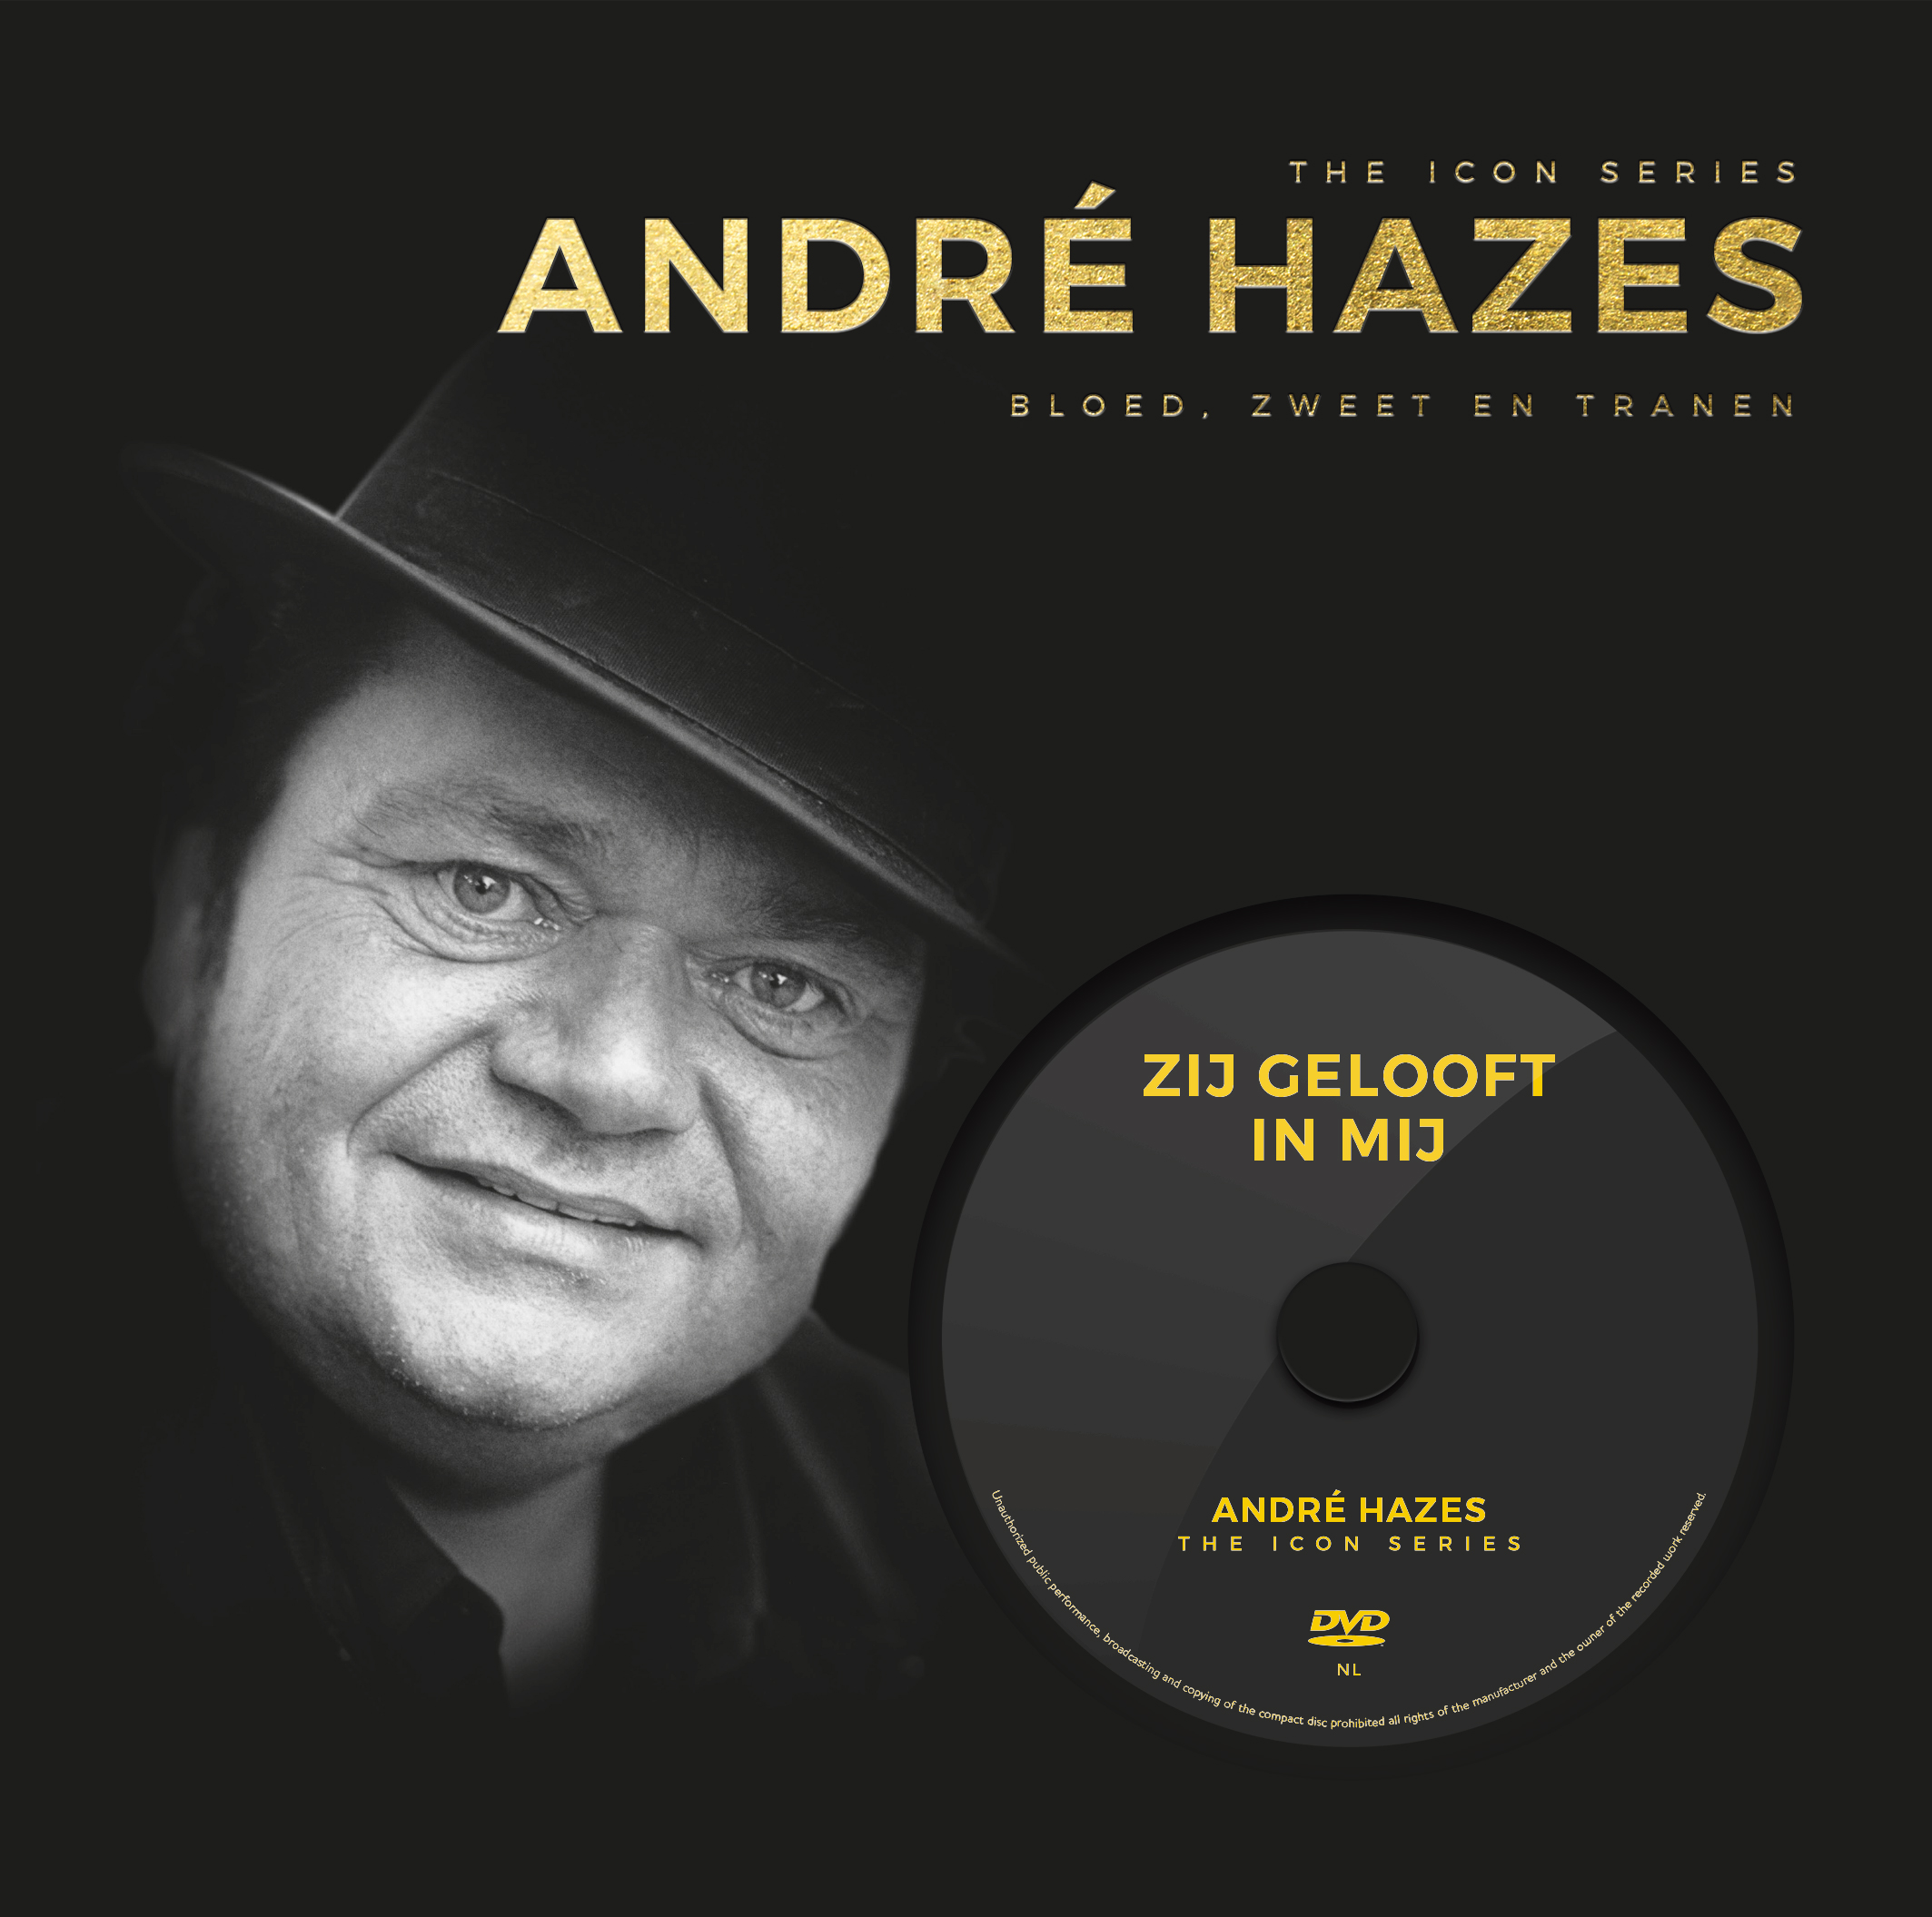 André Hazes - The Icon Series + DVD